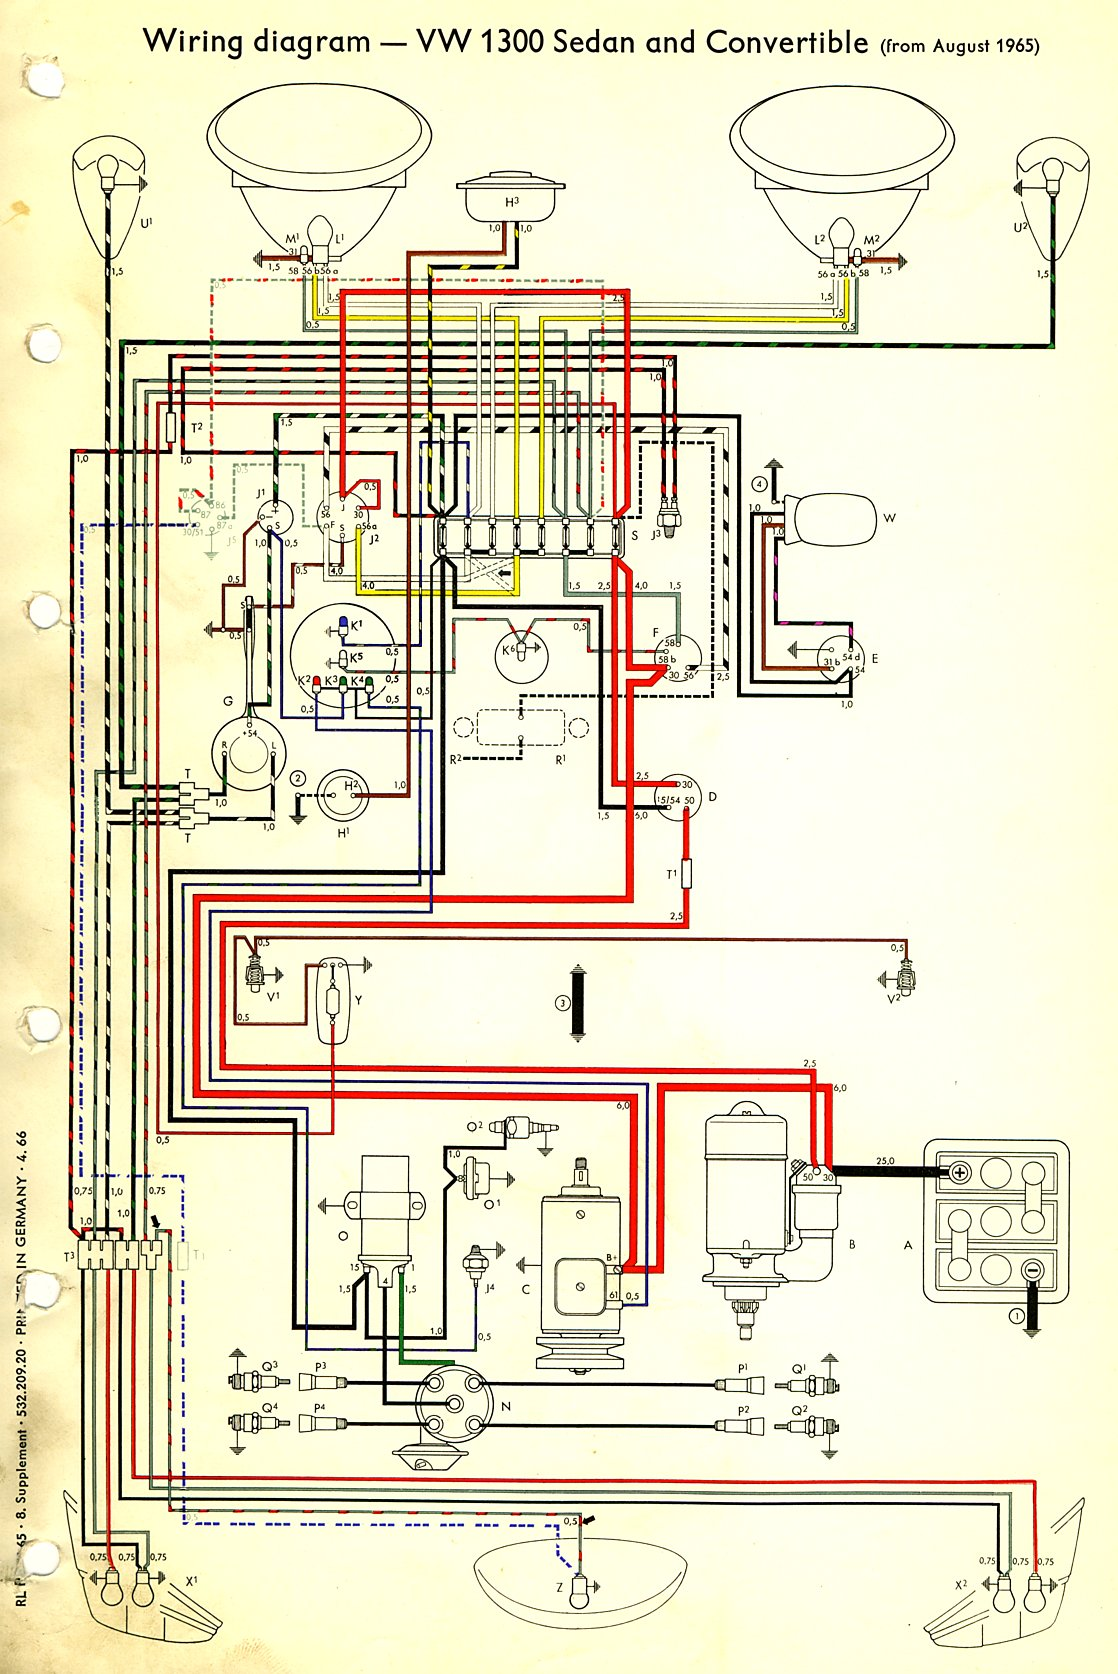 1966 beetle wiring diagram thegoldenbug com rh thegoldenbug com Relay Wiring Diagram 66 VW Beetle Engine Diagram